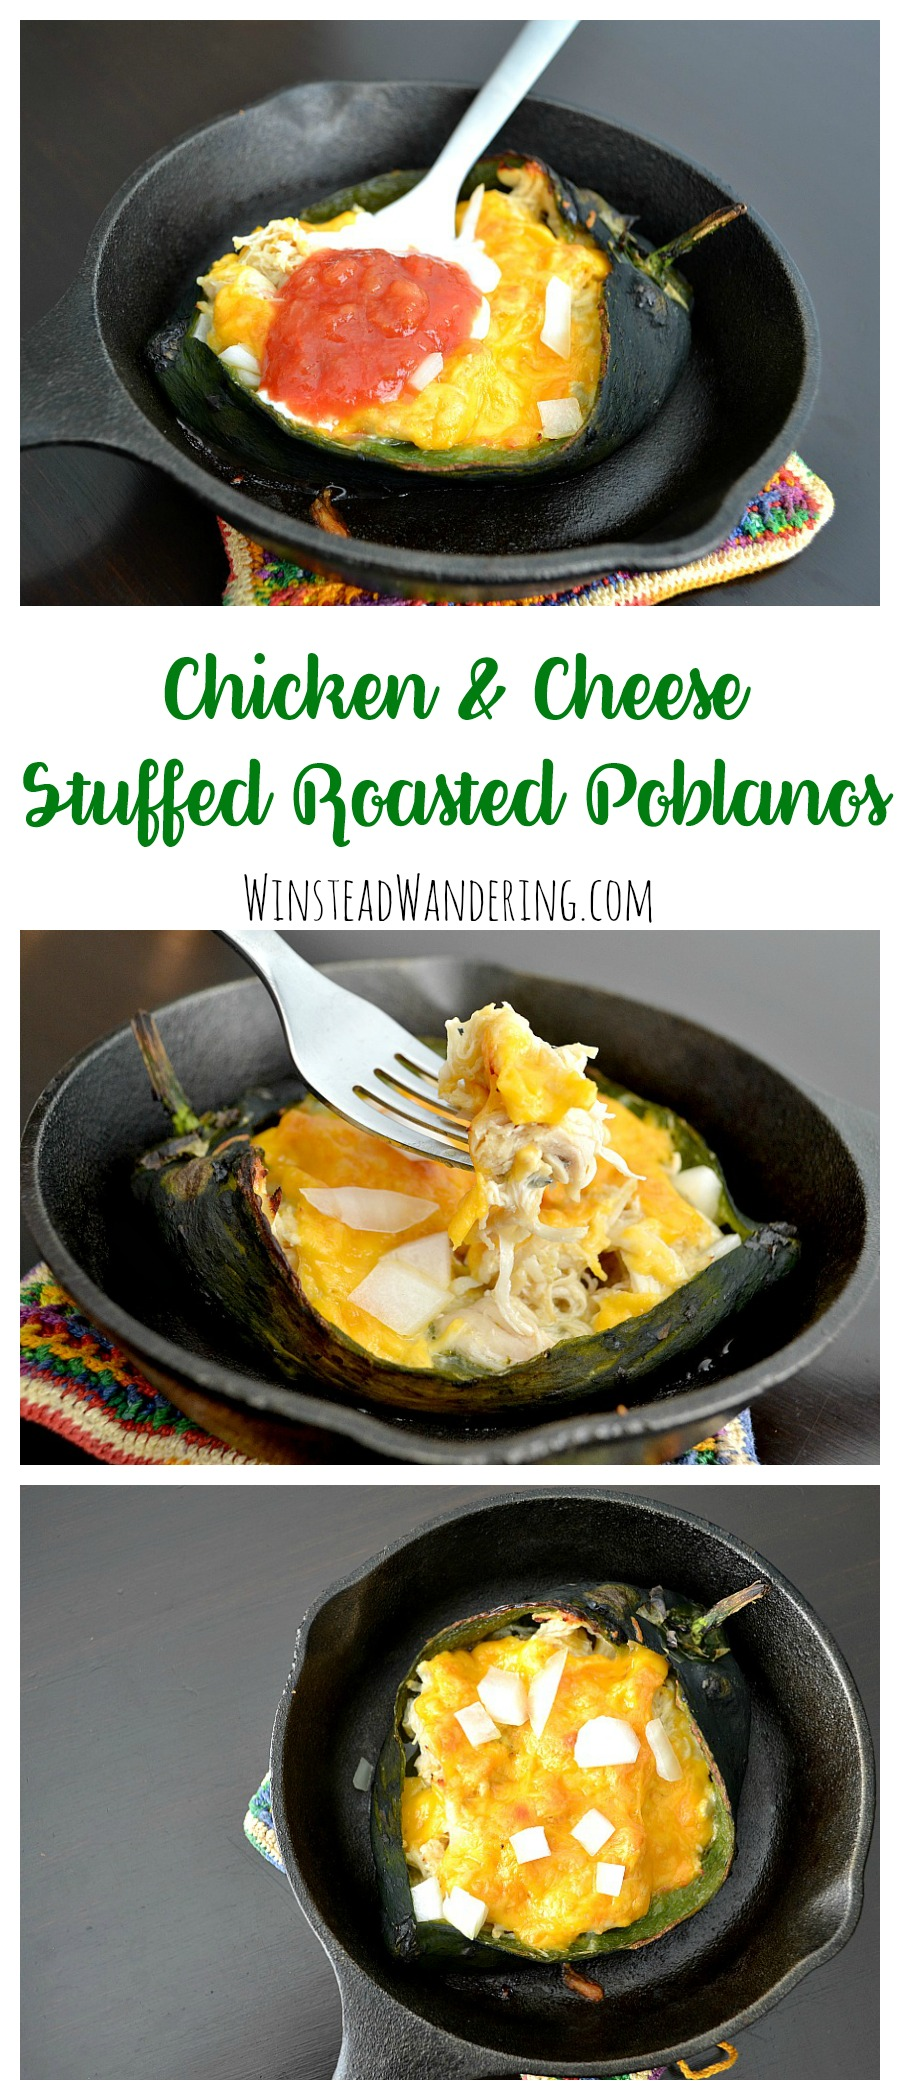 For an easy weeknight meal that's low carb, gluten-free and, most importantly, ridiculously tasty, look no further than Chicken and Cheese Stuffed Roasted Poblanos.